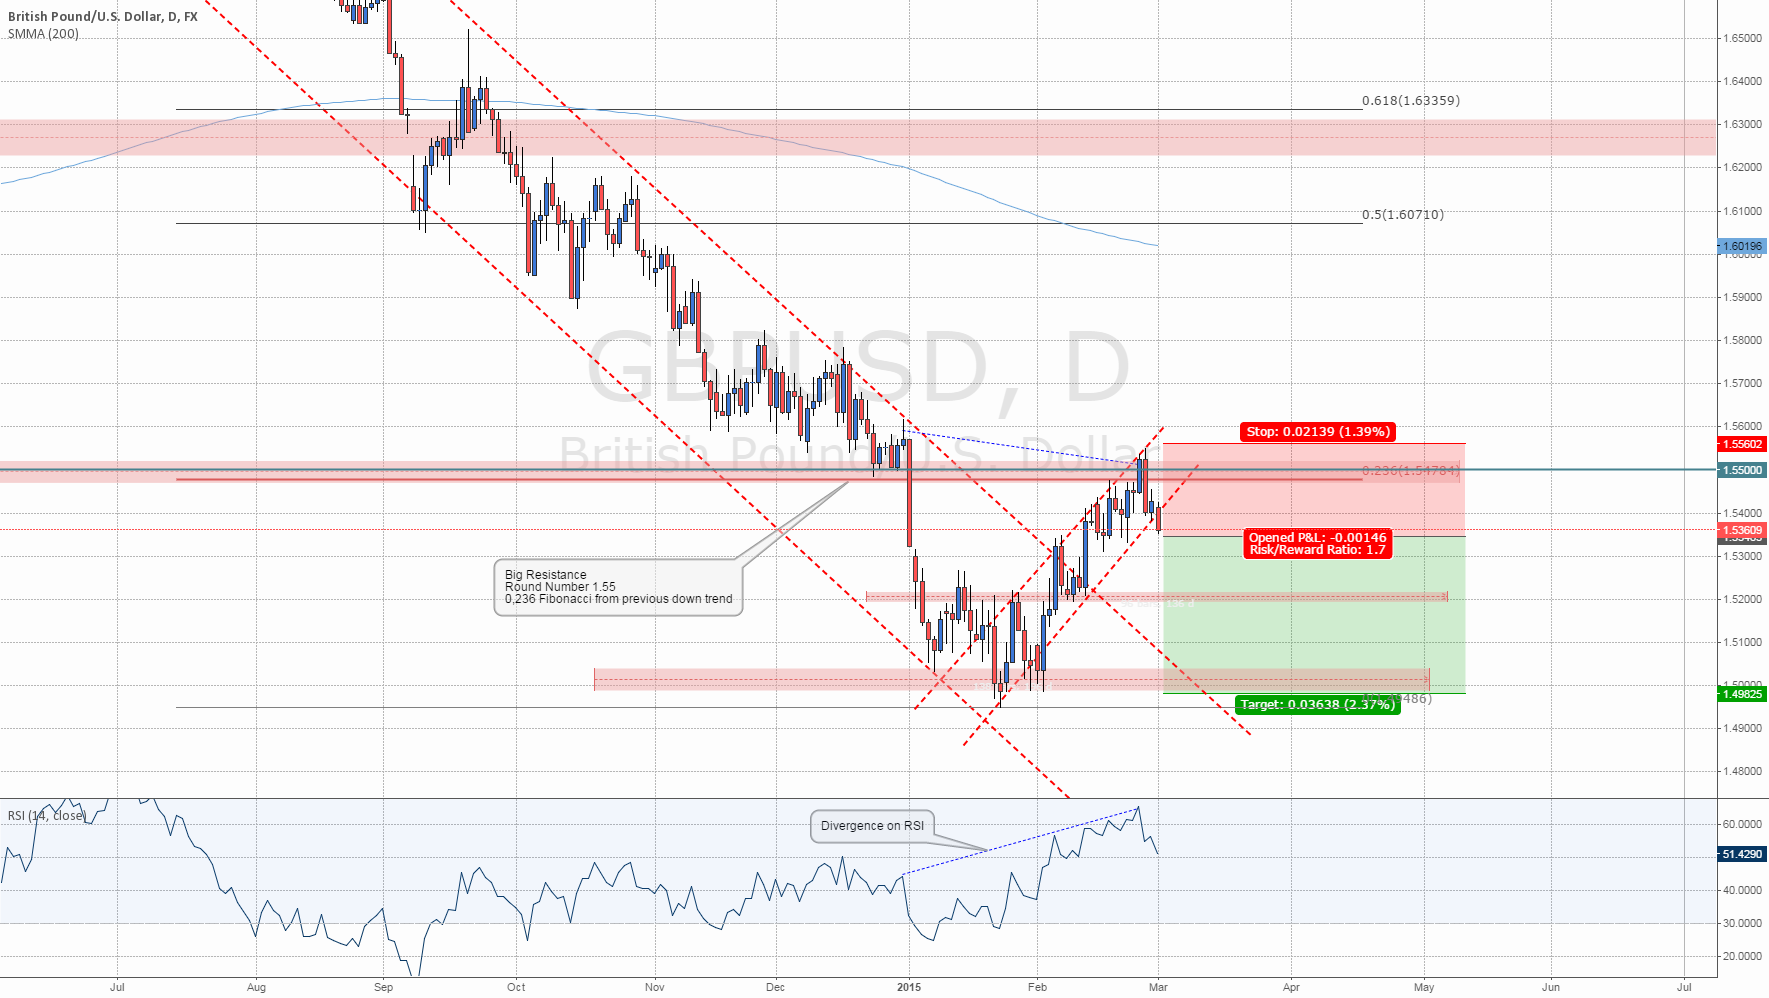 #GBPUSD: Divergence and Fibos for a Short